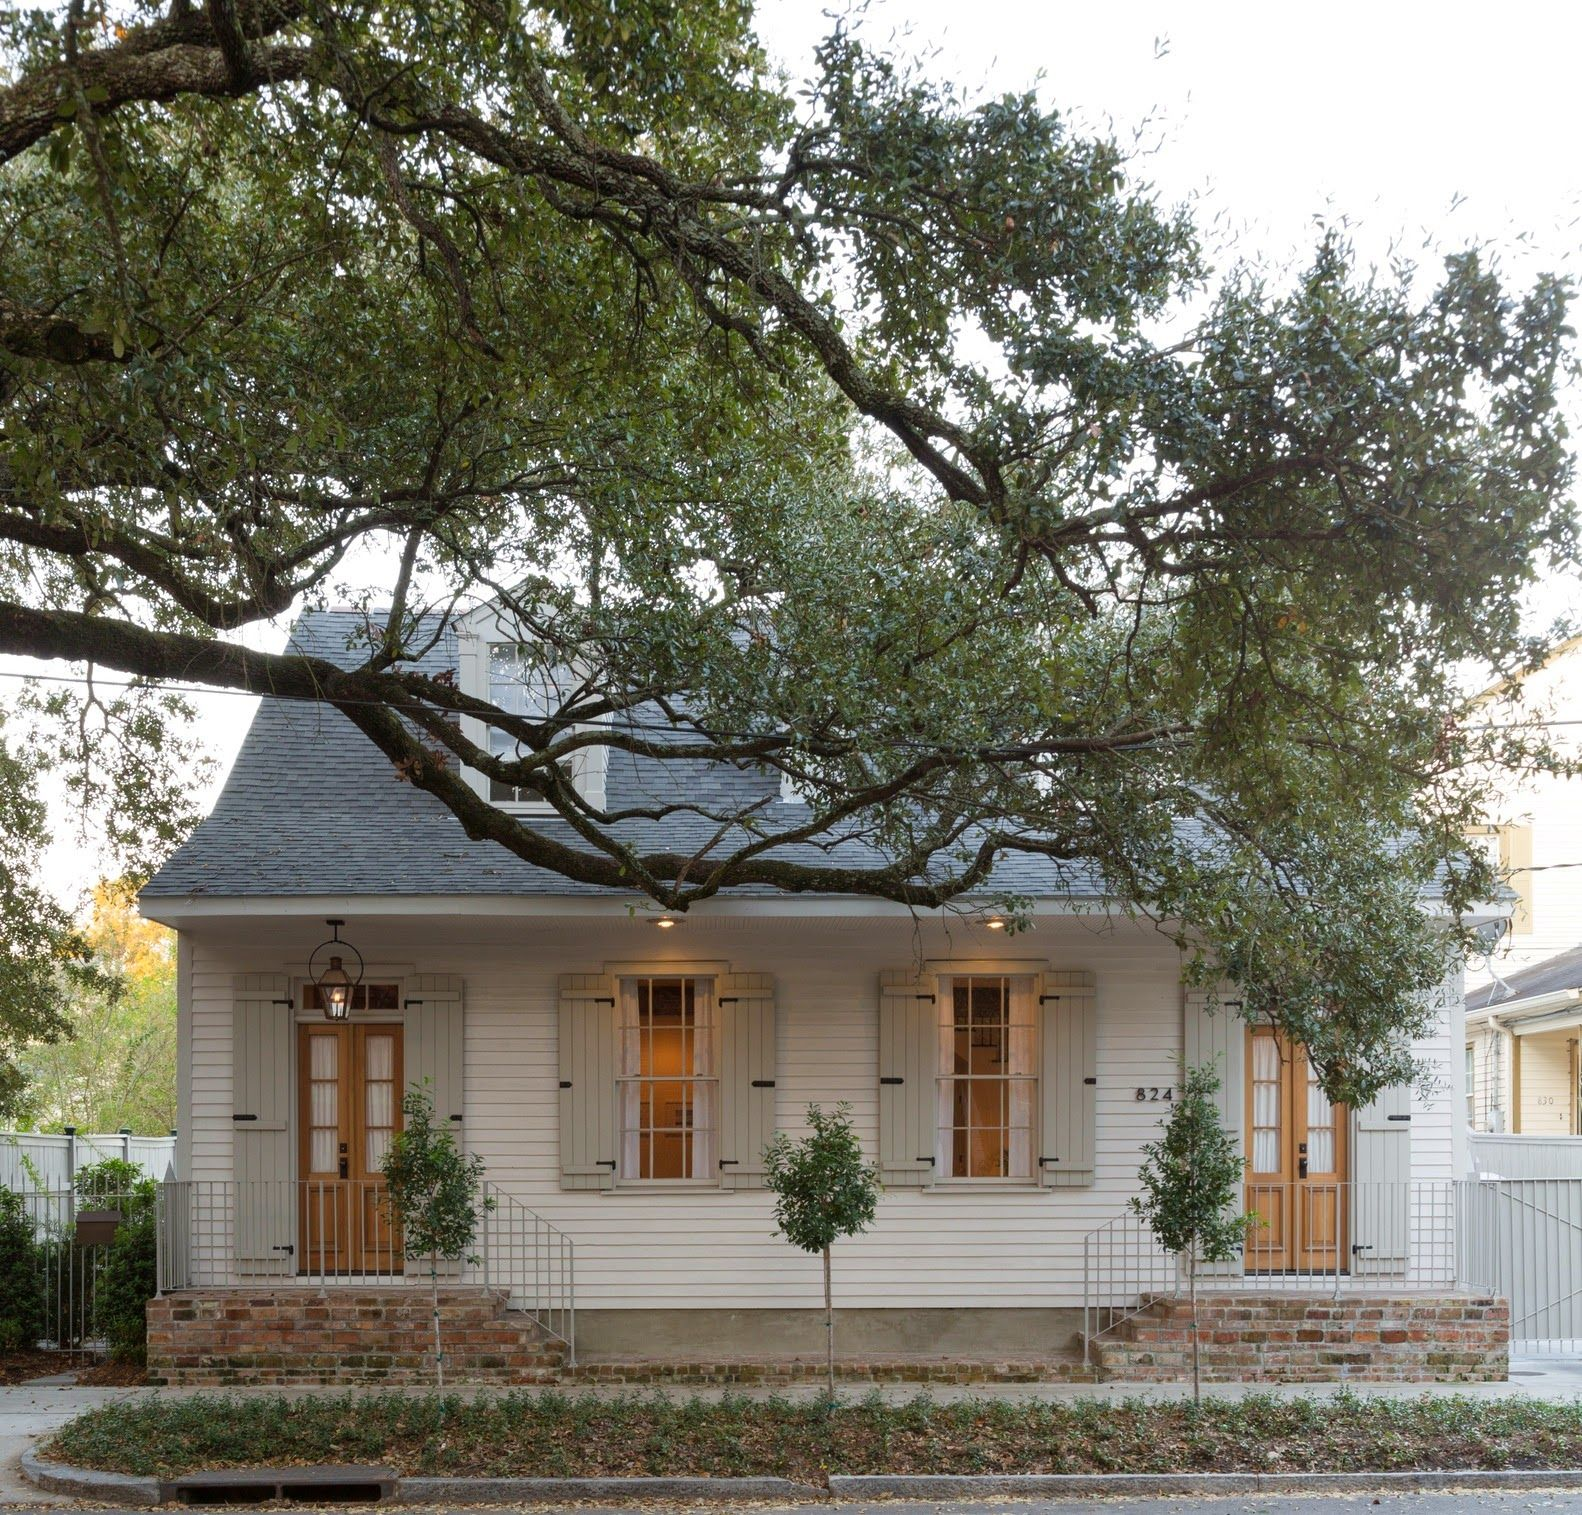 New orleans creole cottage renovation in the irish channel for Cajun cottages